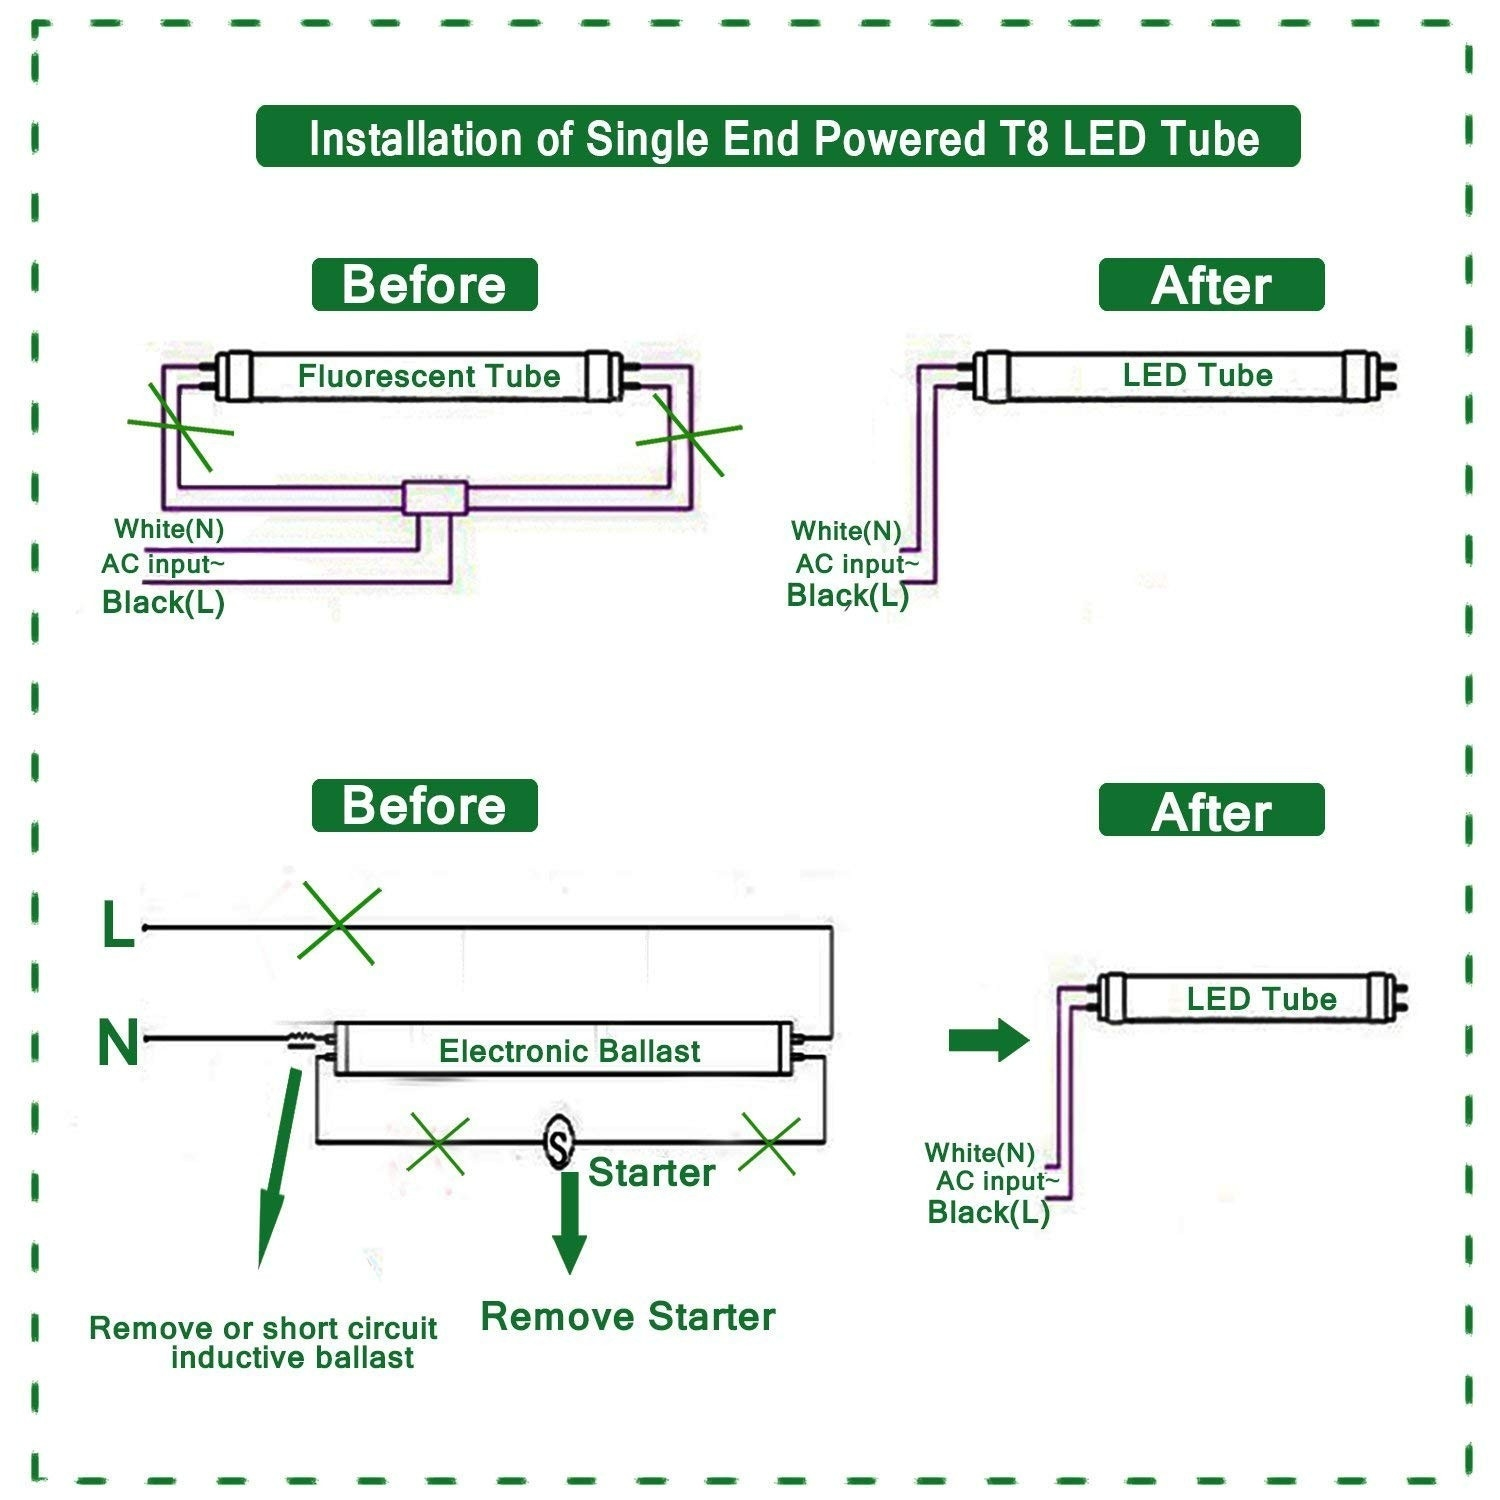 led fluorescent tube wiring diagram Download-Wiring Diagram For Fluorescent Lights New Wiring Diagram For Fluorescent Light Fresh Wiring Diagram For Led 9-q